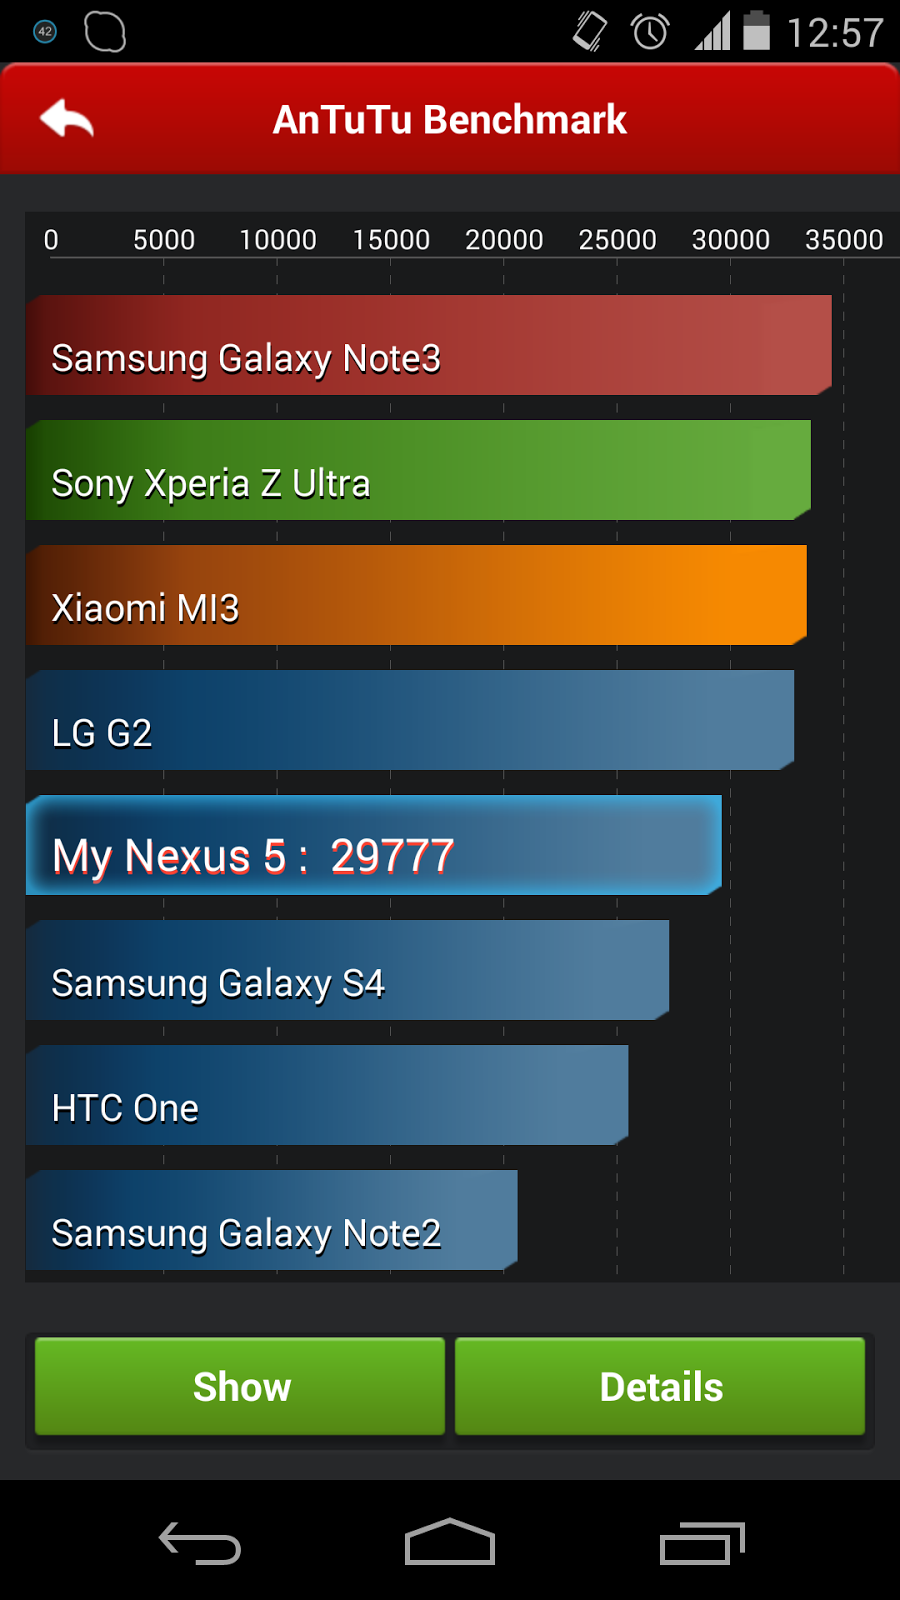 Google+LG+Nexus+5+Android+KitKat+Review+Handson+Detailed+Benchmark++%25282%2529.png